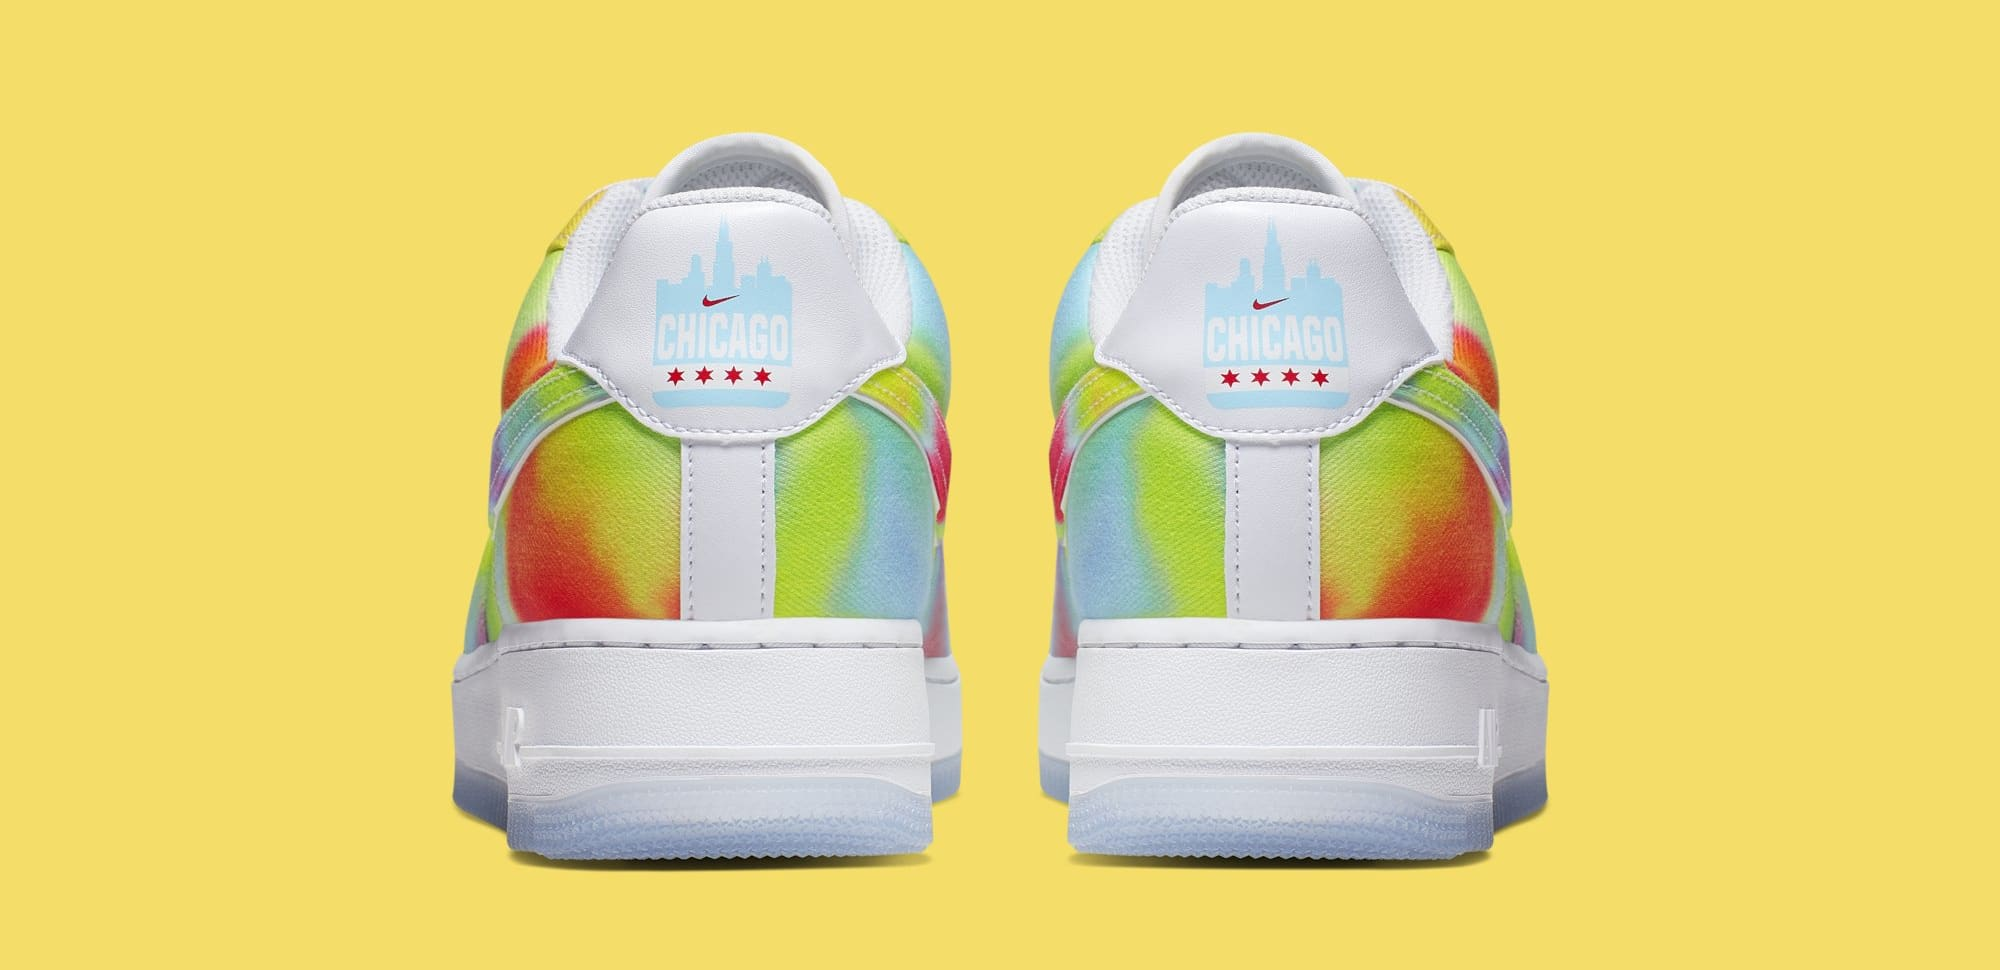 Nike Air Force 1 Low 'Tie-Dye/Chicago' CK0838-100 (Heel)